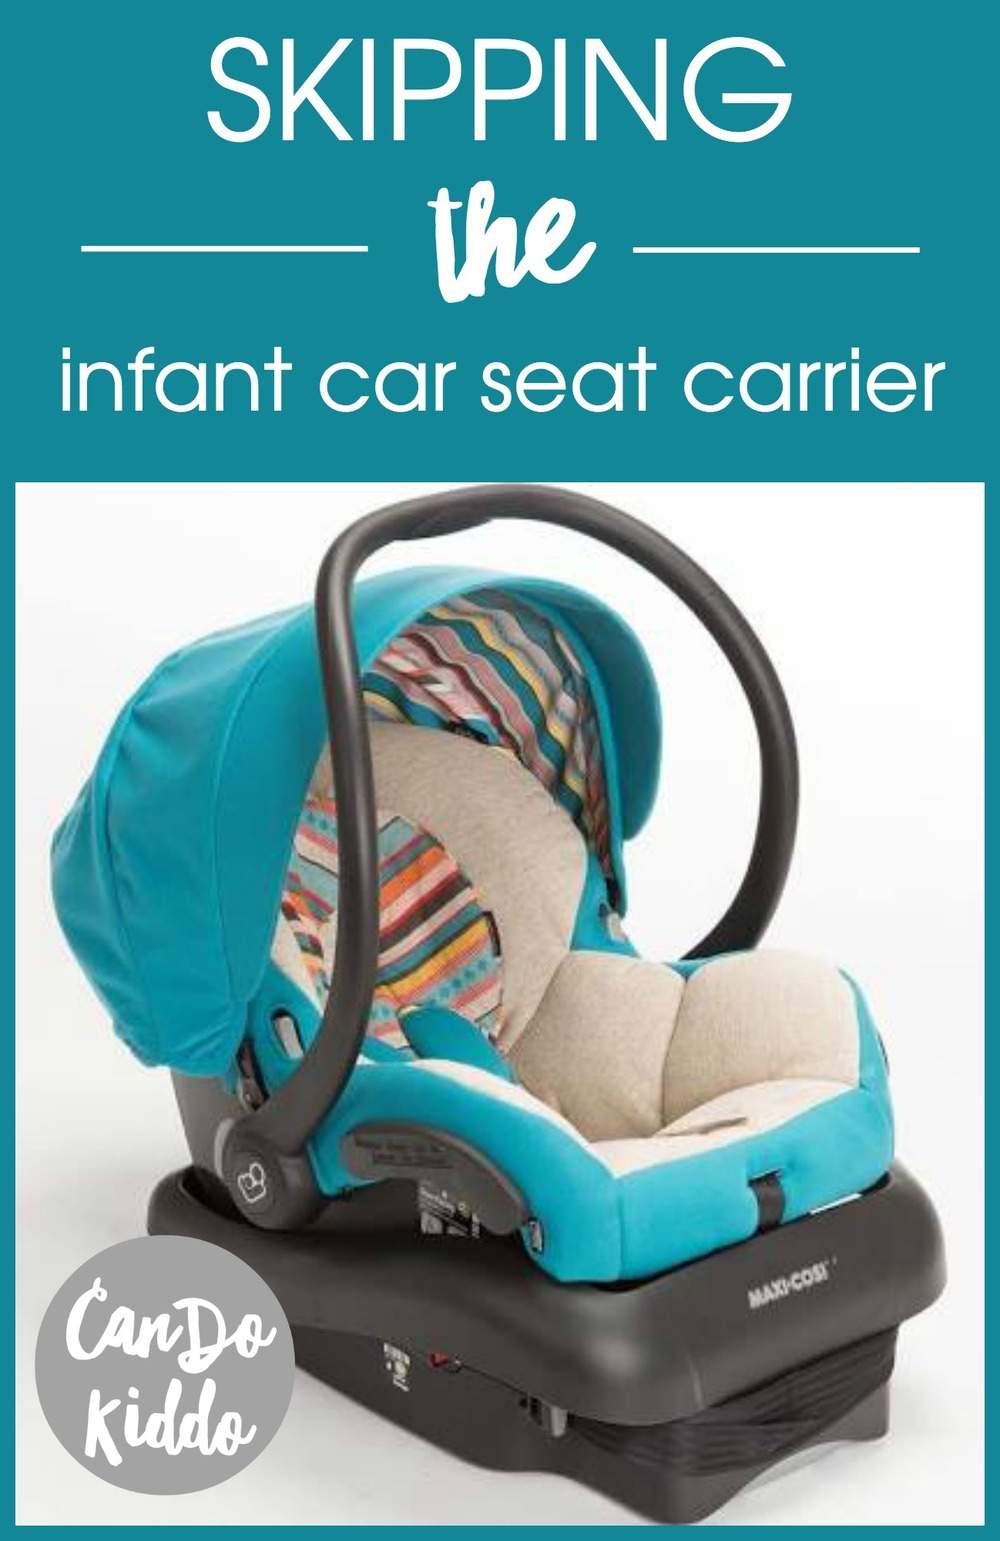 But Can You Could Skip The Baby Bucket Seat All Together